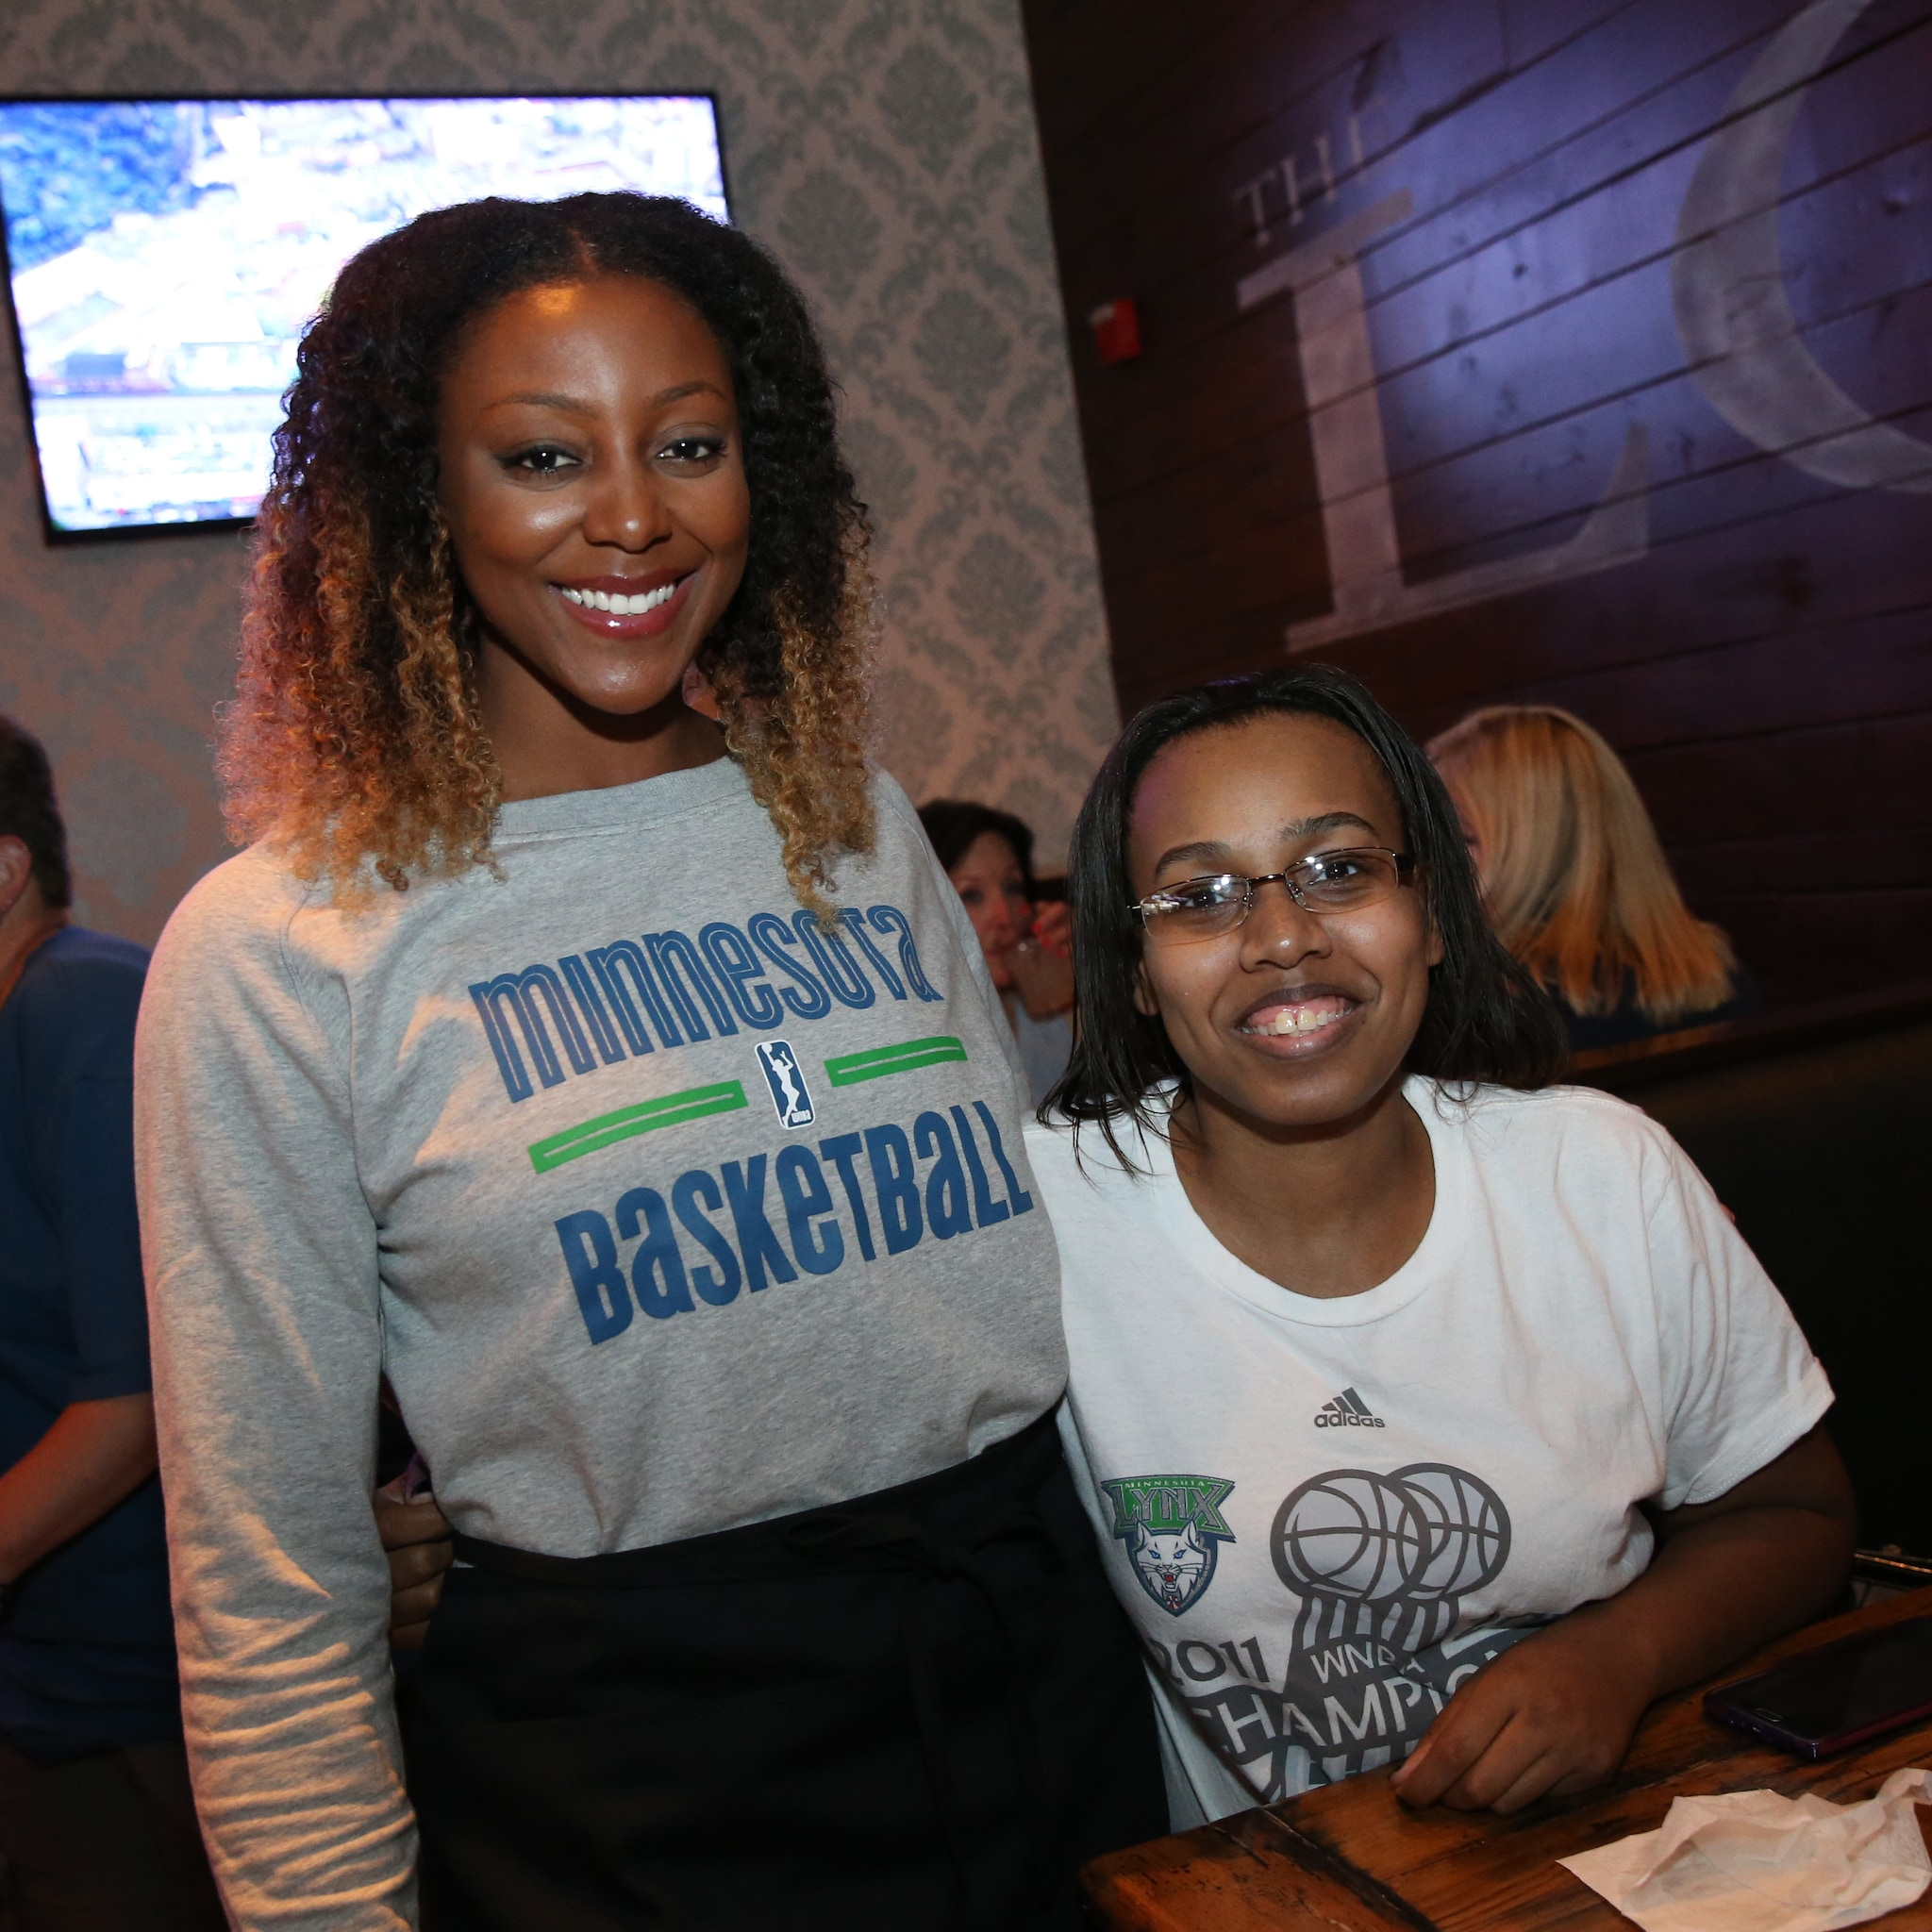 MINNEAPOLIS, MN - JUNE 3:  Monica Wright #22 of the Minnesota Lynx poses with a fan during the Tip-A-Lynx fundraiser to benefit the Minnesota Lynx Fastbreak Foundation on June 3, 2015 at the Loop West End Bar & Restaurant in Minneapolis, Minnesota.  NOTE TO USER: User expressly acknowledges and agrees that, by downloading and or using this Photograph, user is consenting to the terms and conditions of the Getty Images License Agreement. Mandatory Copyright Notice: Copyright 2015 NBAE (Photo by David Sherman/NBAE via Getty Images)